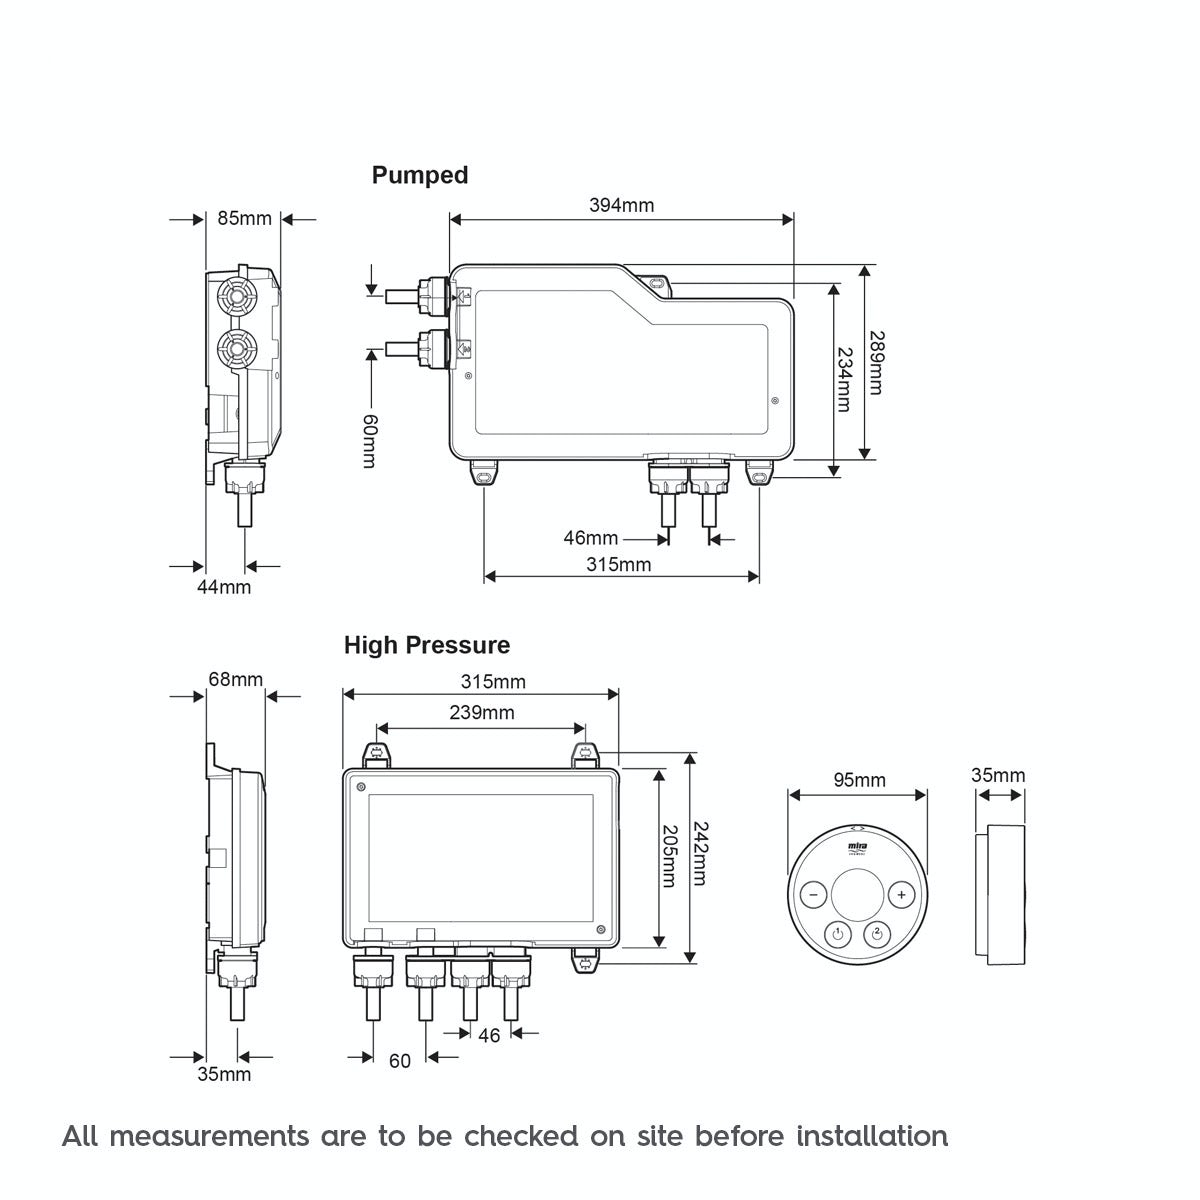 Dimensions for Mira Platinum dual digital shower valve and controller pumped